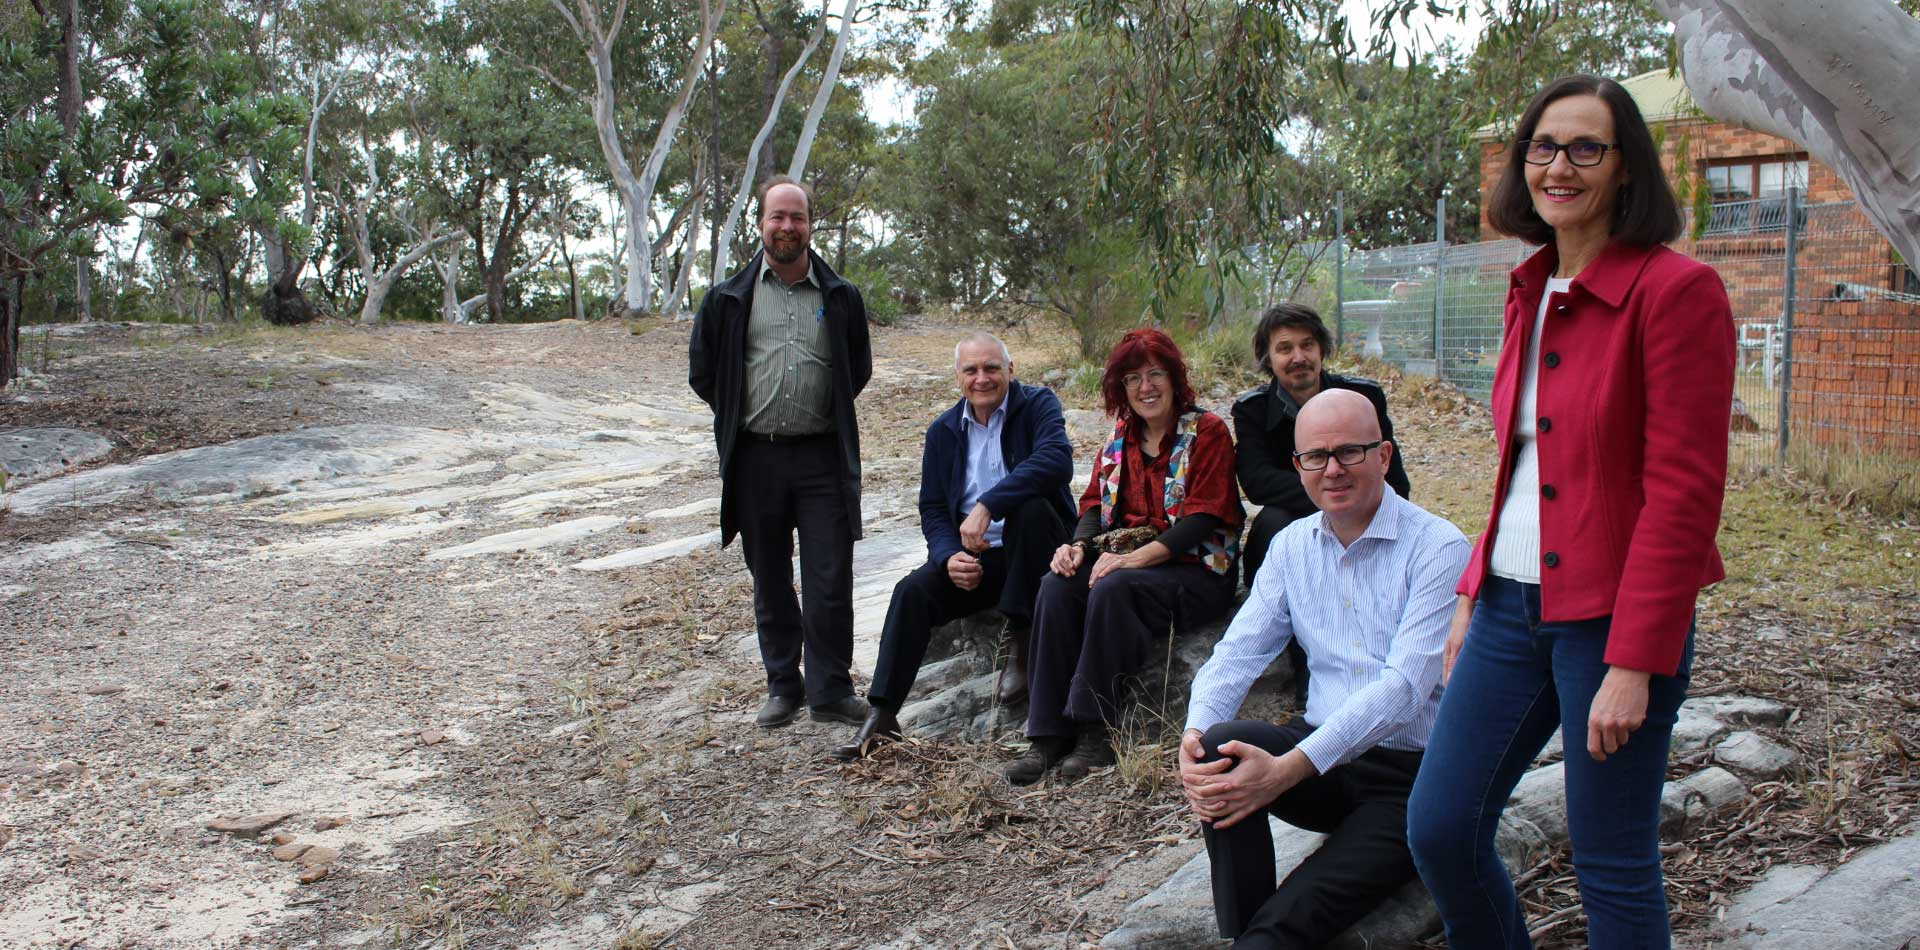 Cr Romola Hollywood; Mayor, Cr Mark Greenhill; Linden Resident's Association reps Lewis Morley & Marilyn Pride; Deputy Mayor, Cr Chris Van der Kley  and Cr Brent Hoare welcome the development of a conservation management strategy for the historic remnant of Cox's Road